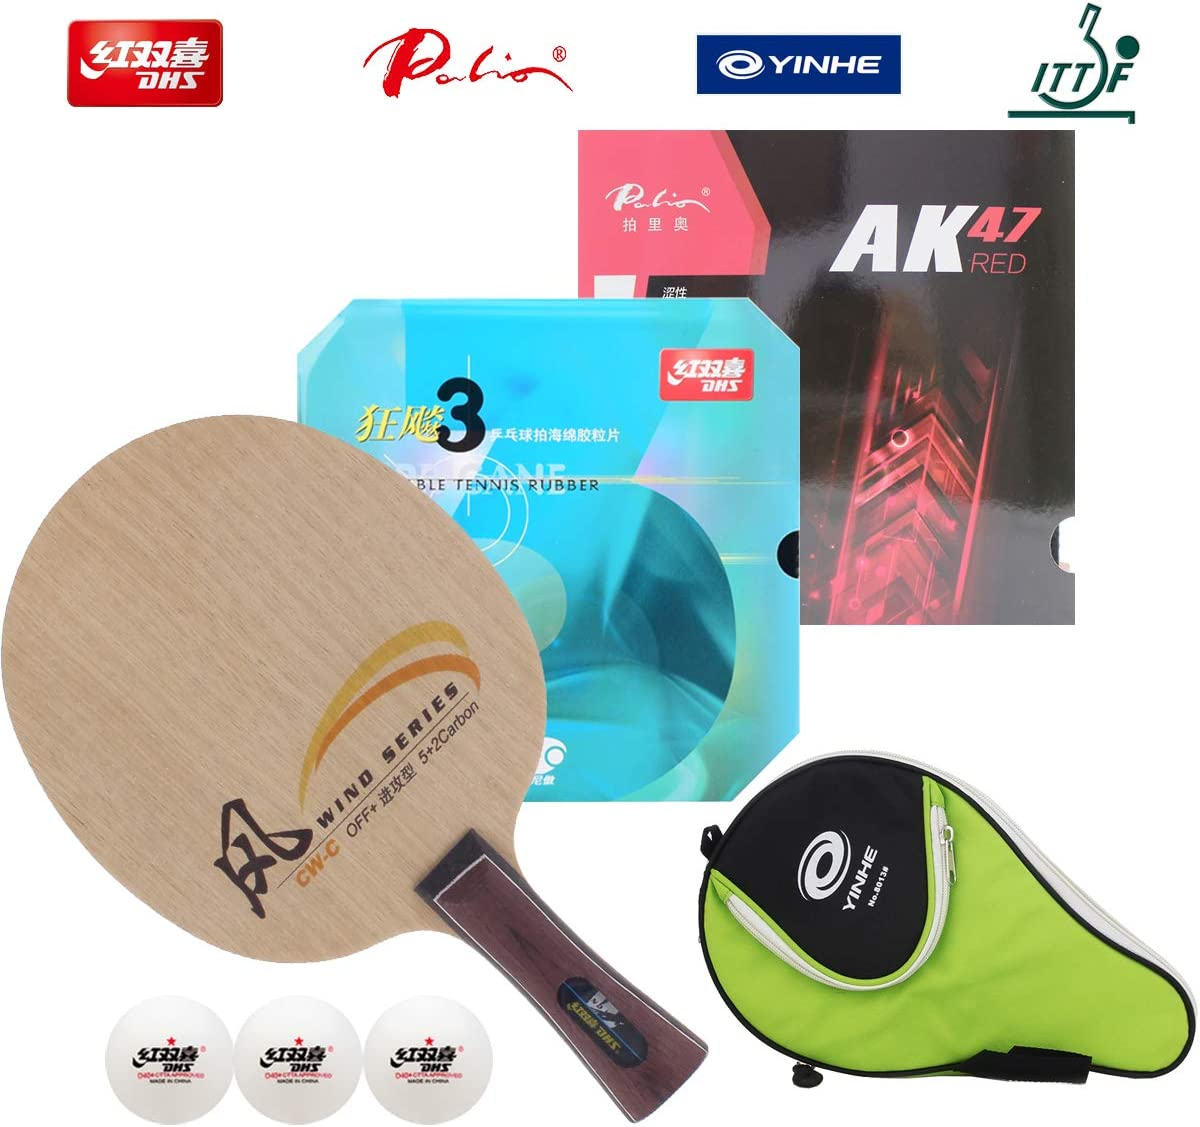 DHS Hand Assembled Professional Table Tennis Racket - Professional Ping Pong Racket Combination CW-C CW-D Table Tennis Blade NEO Hurricane 3 and Palio AK47 - Red Style Rubber